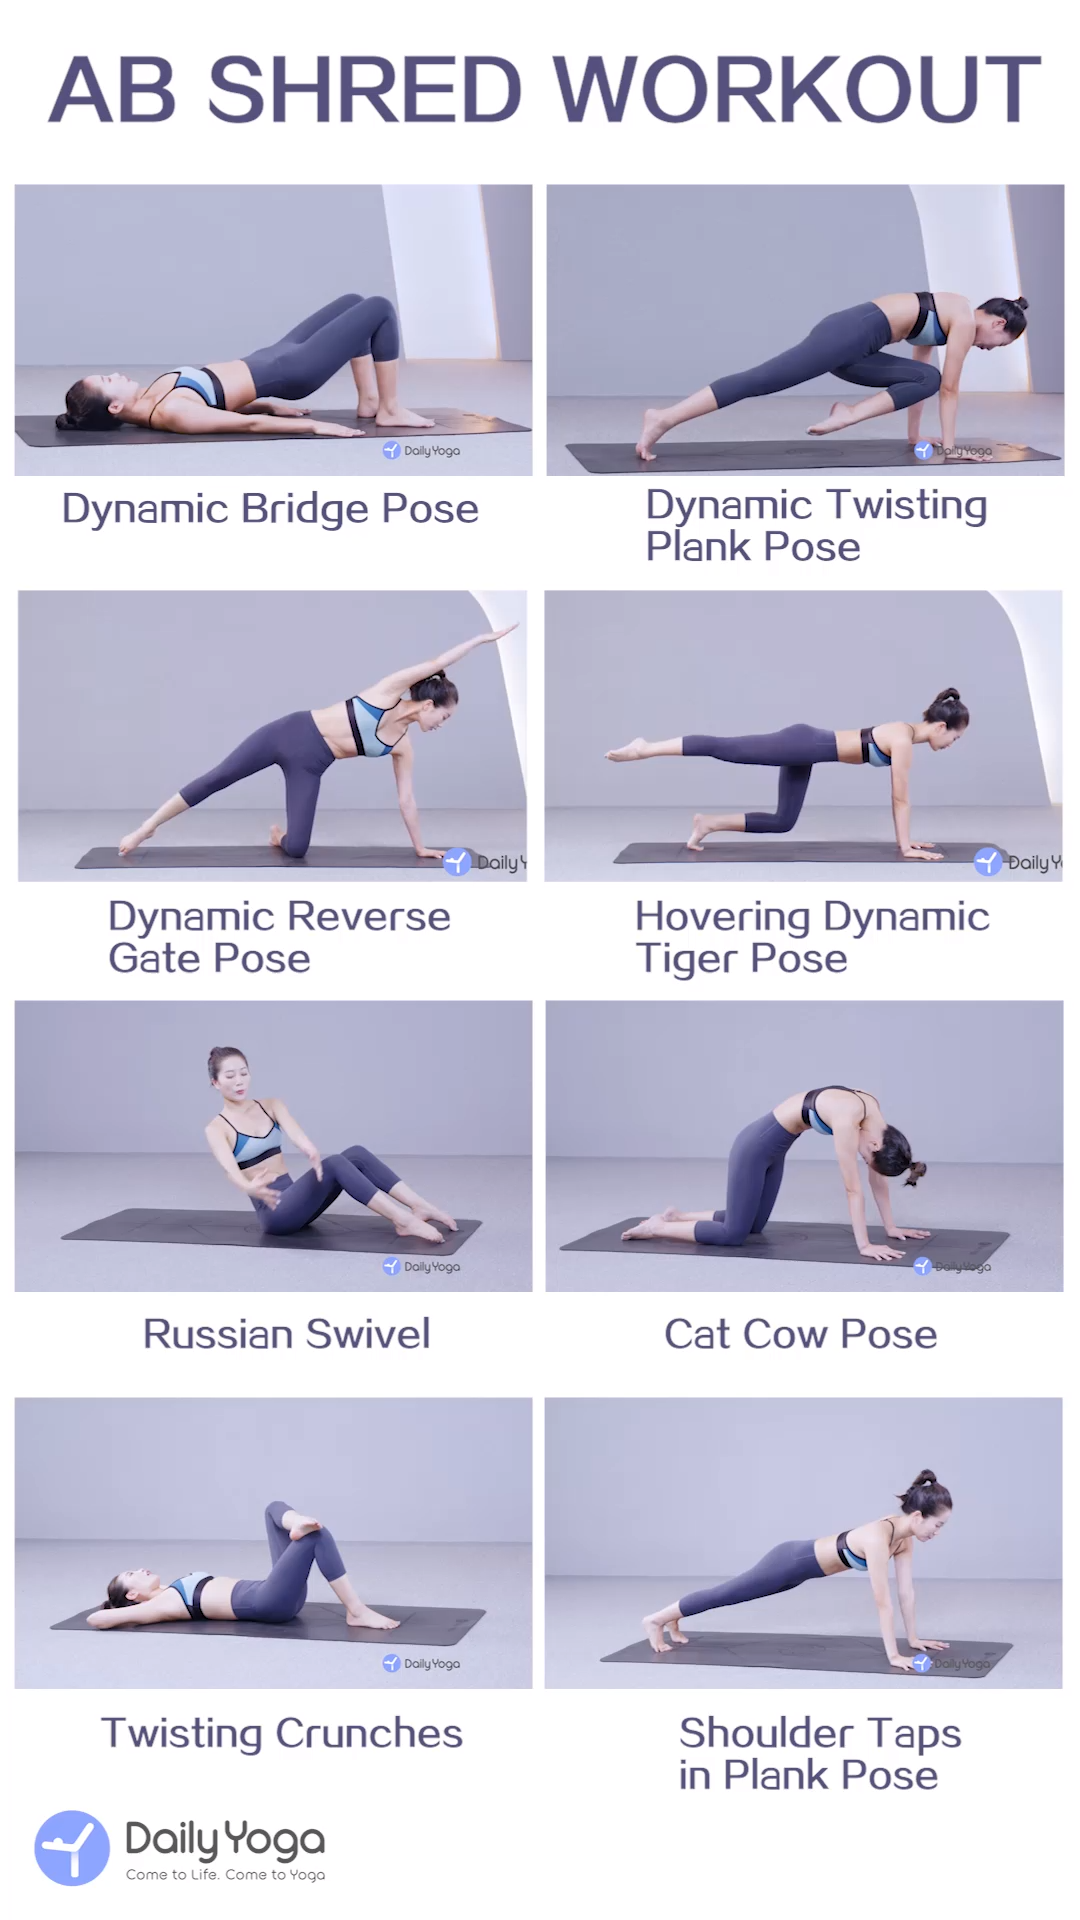 DailyYogaApp|Ab Shred Workouts #abchallenge